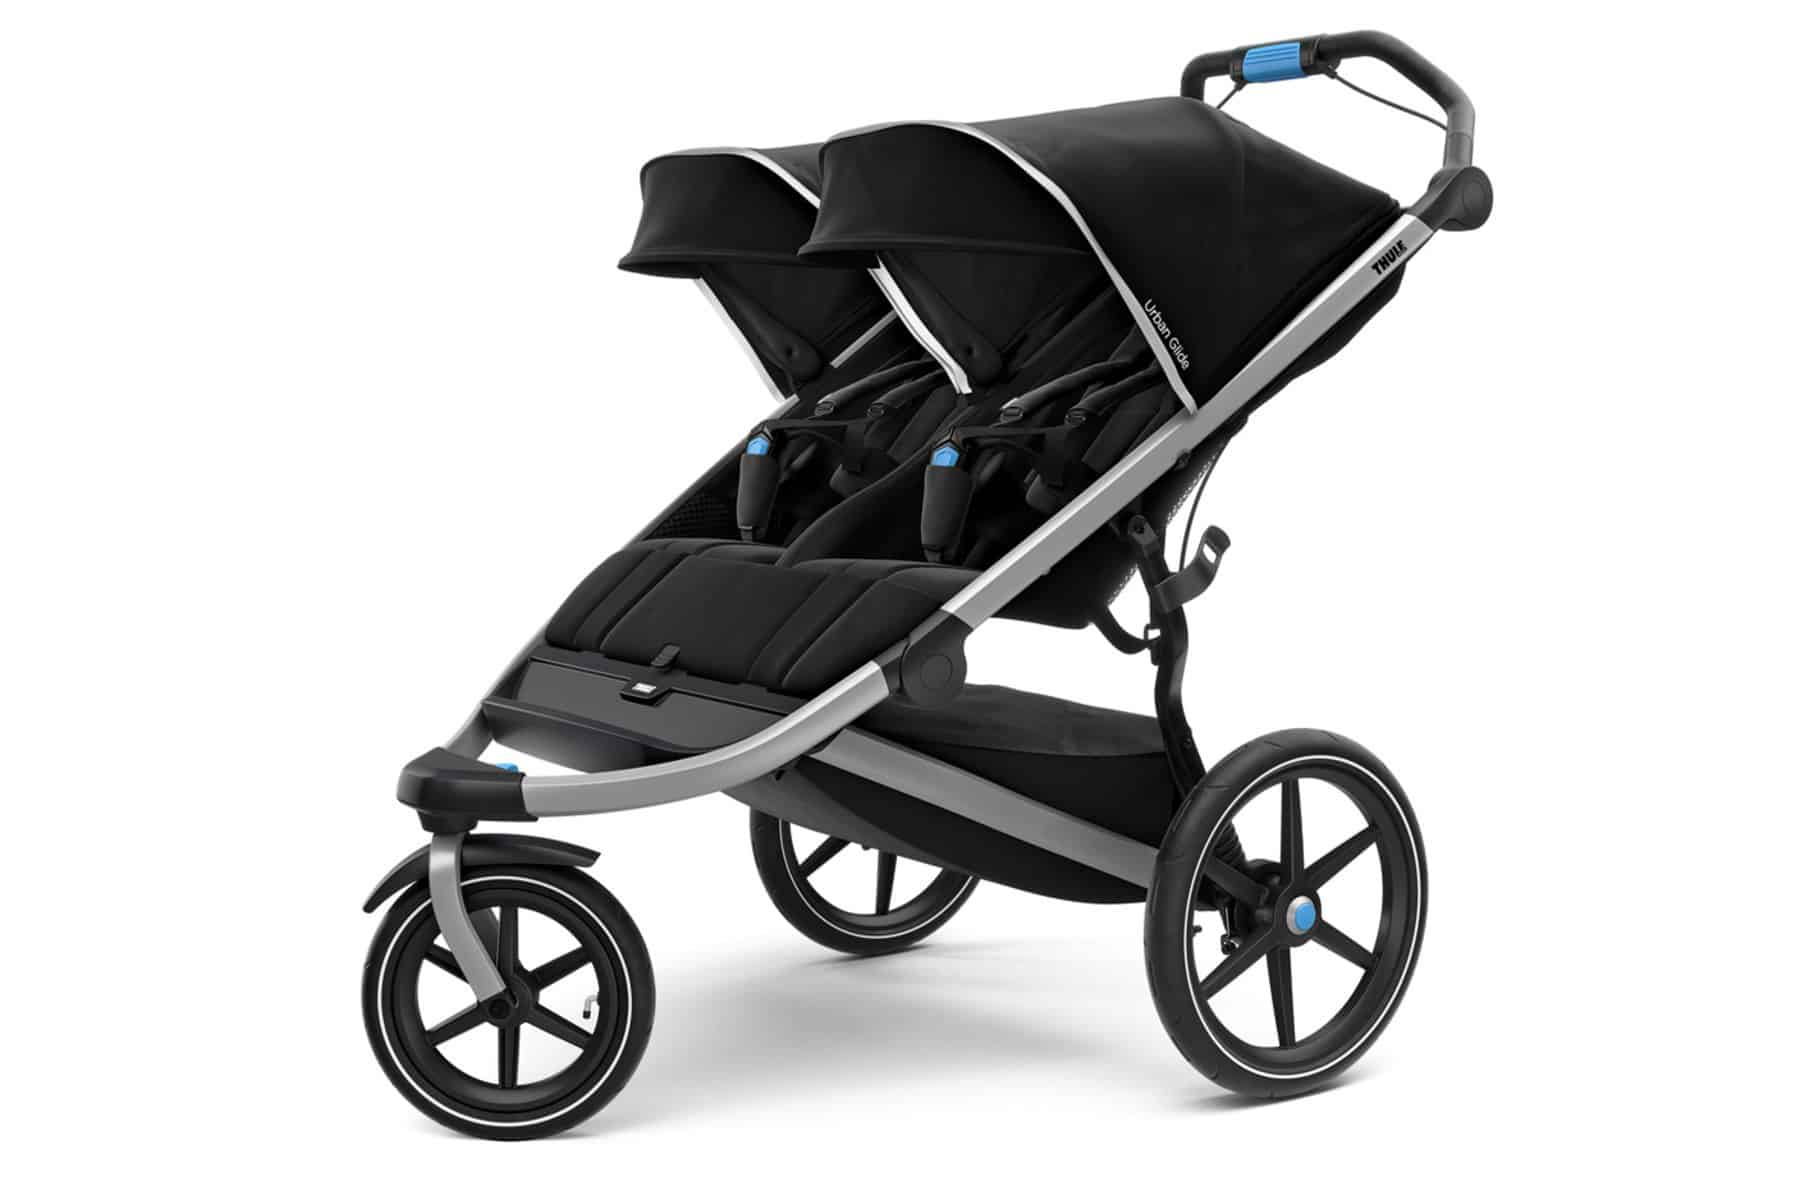 Thule Urban Glide 2 Stroller Review